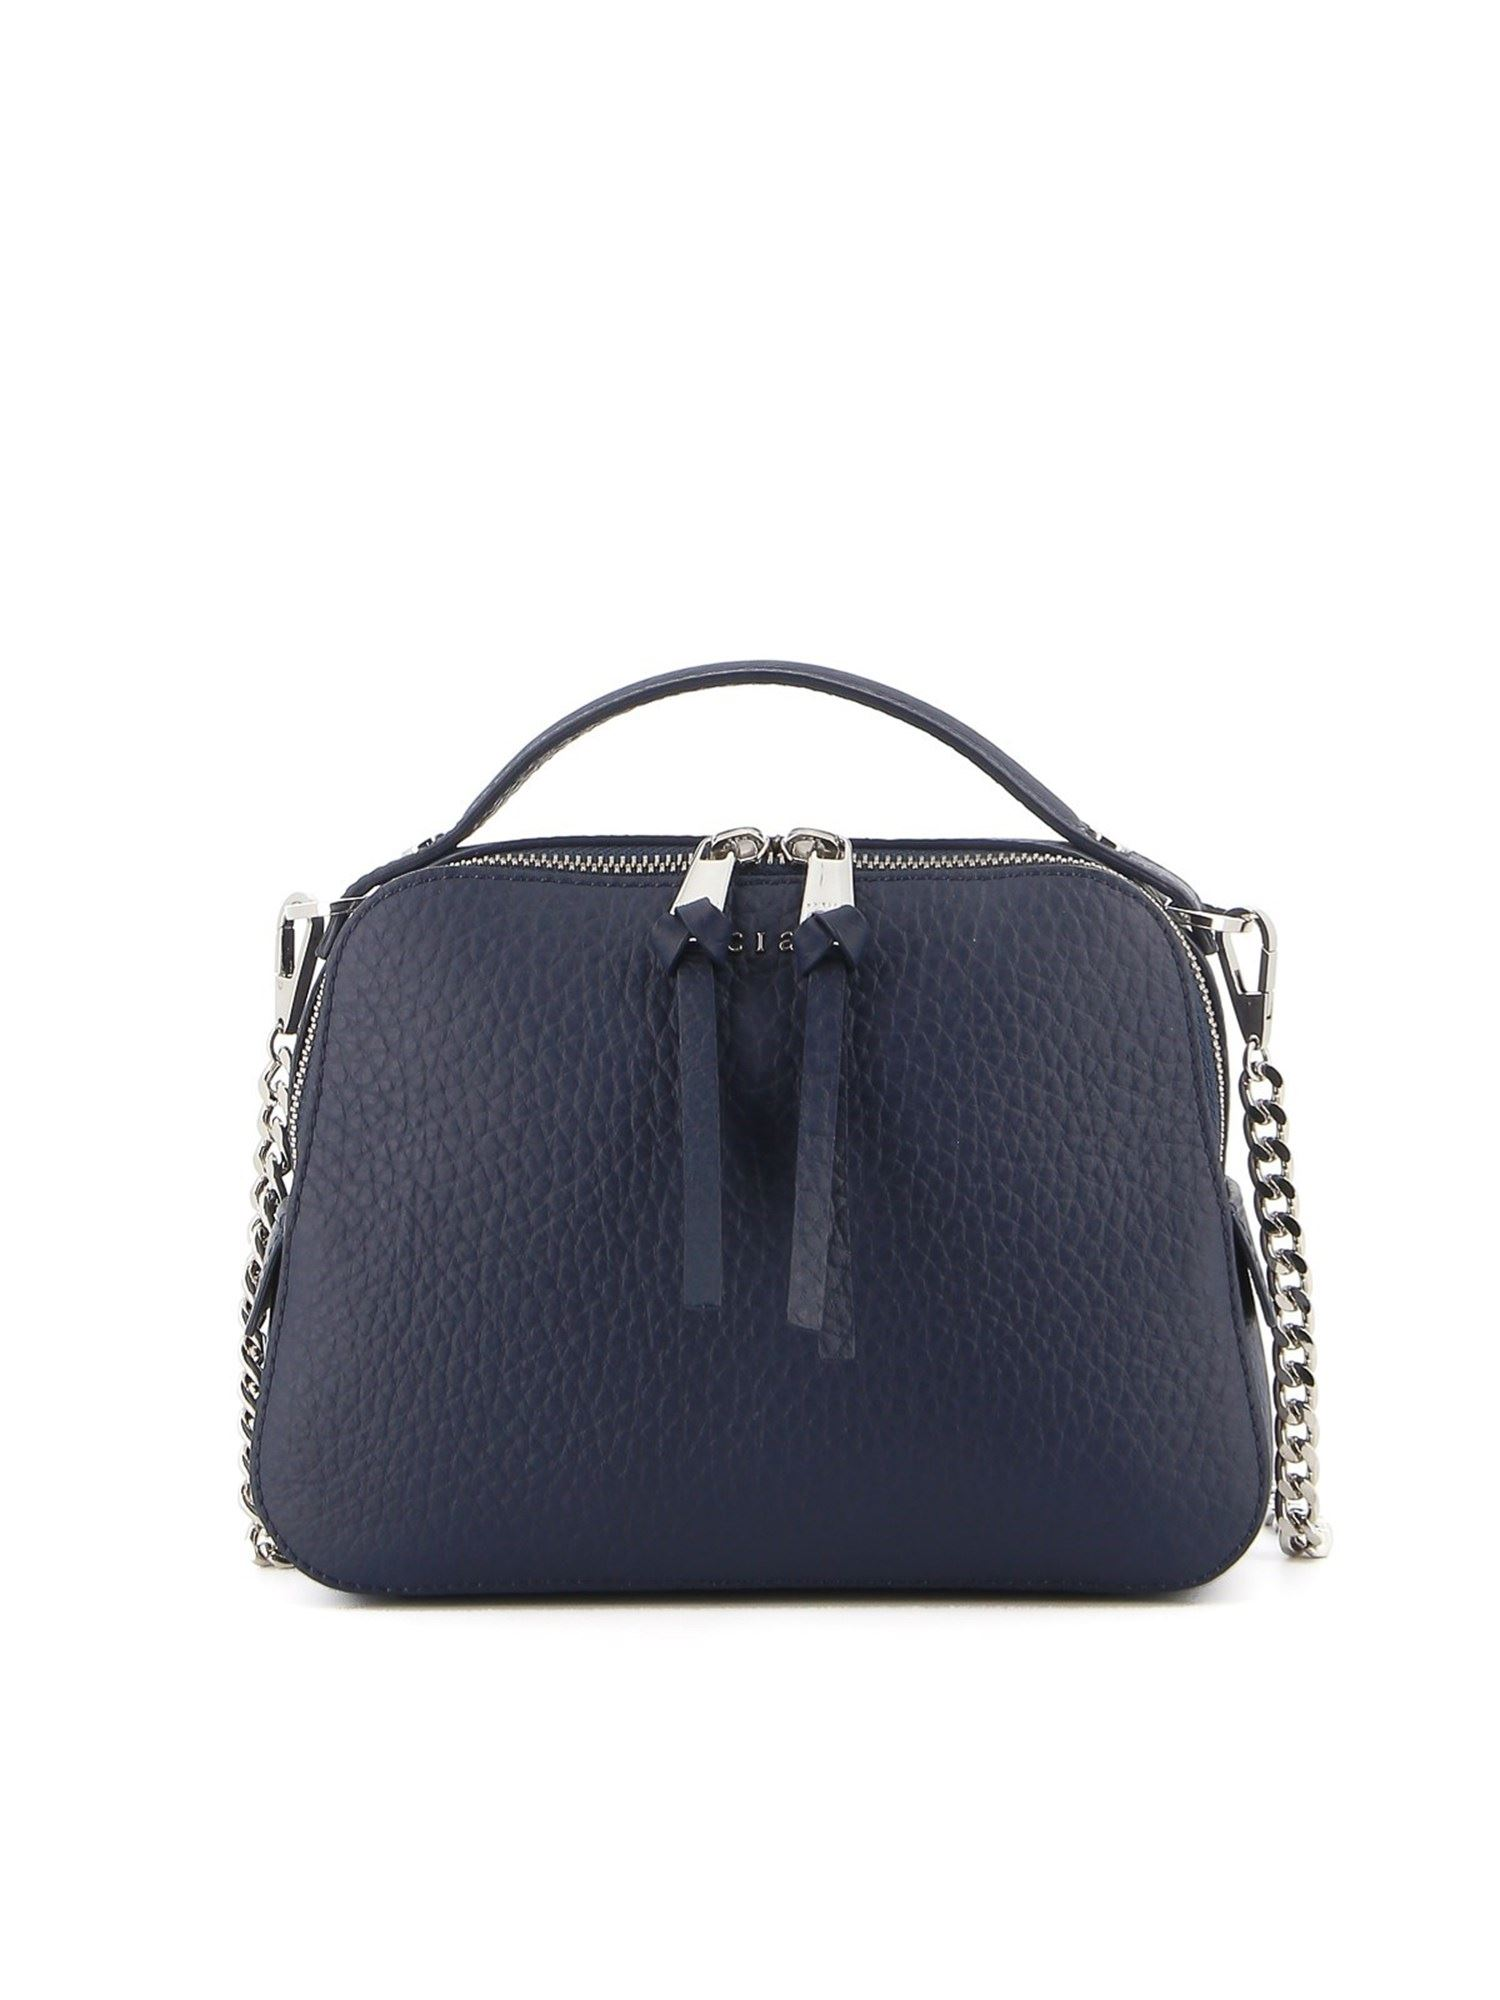 Orciani SOFT HAMMERED LEATHER CROSS BODY BAG IN BLUE